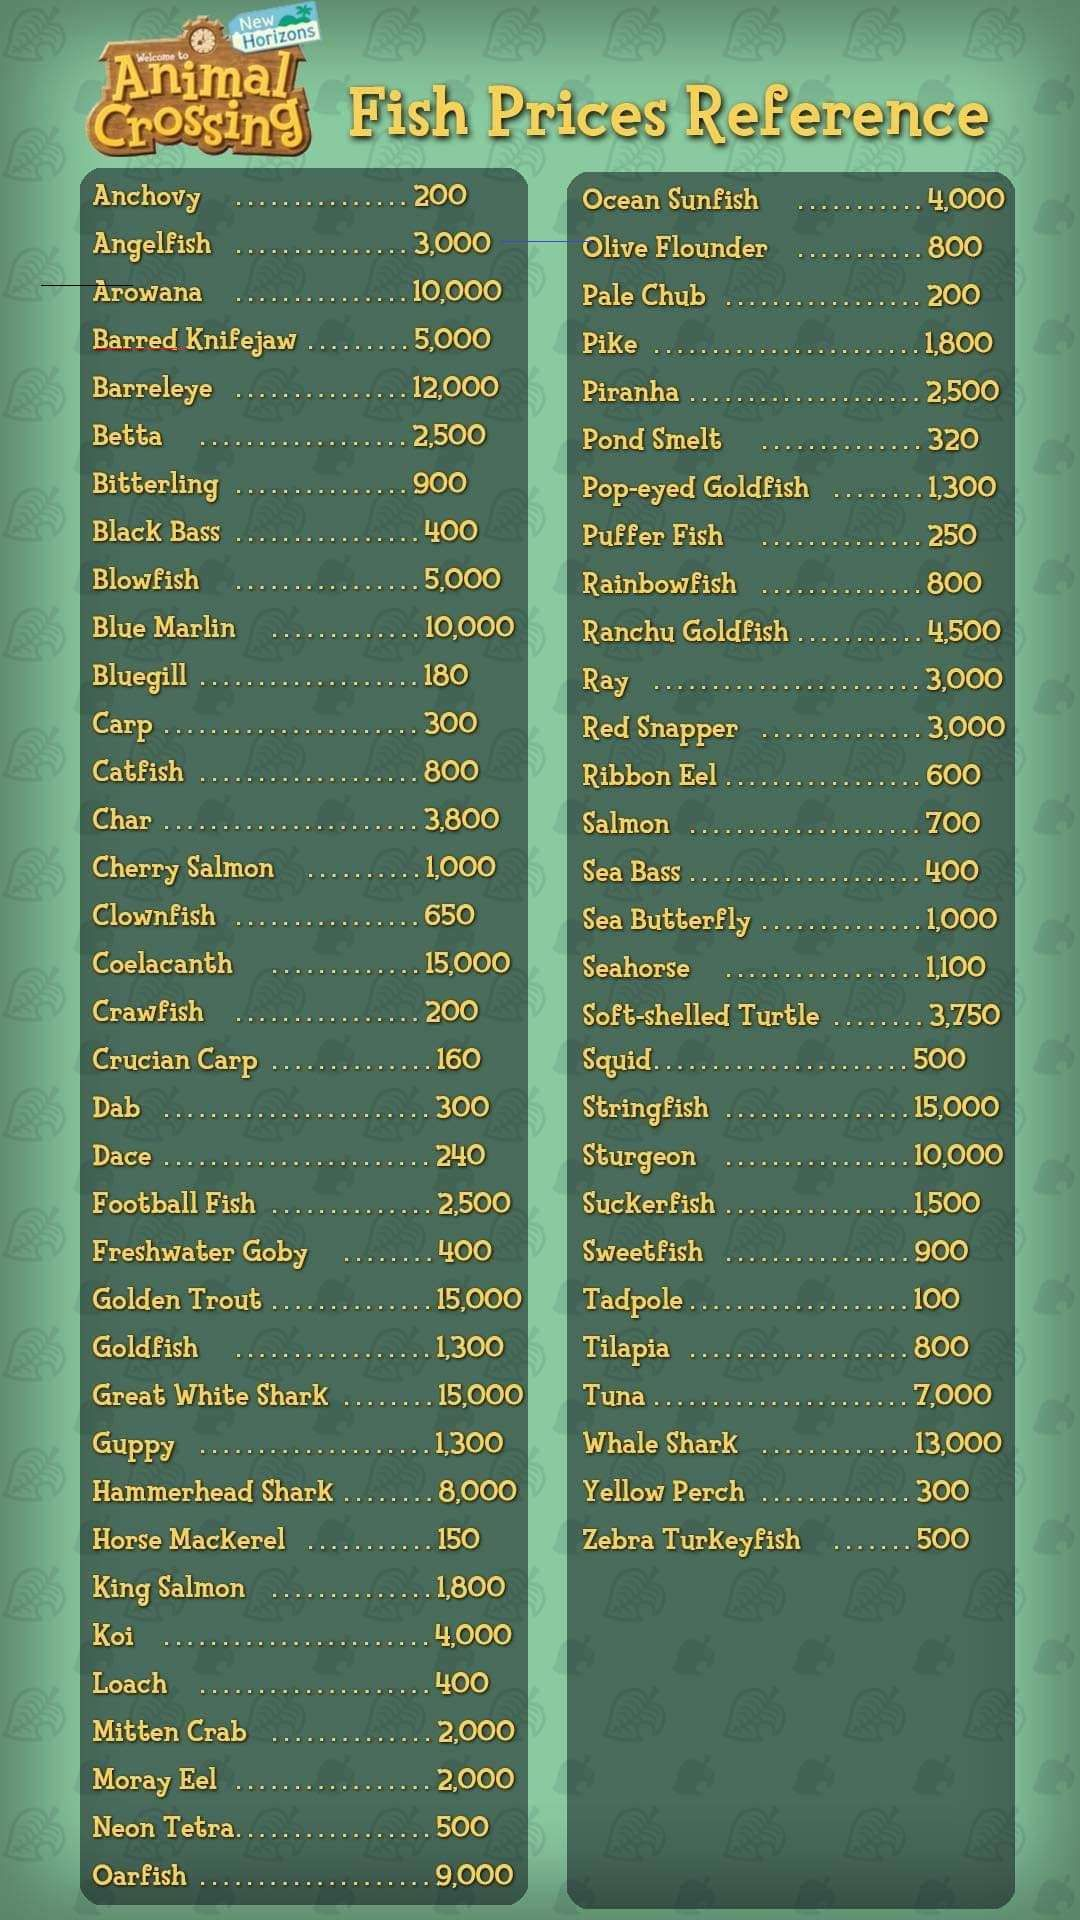 Verlobungs Ideen Acnh Fish Prices Reference Guide In 2020 | Animal Crossing